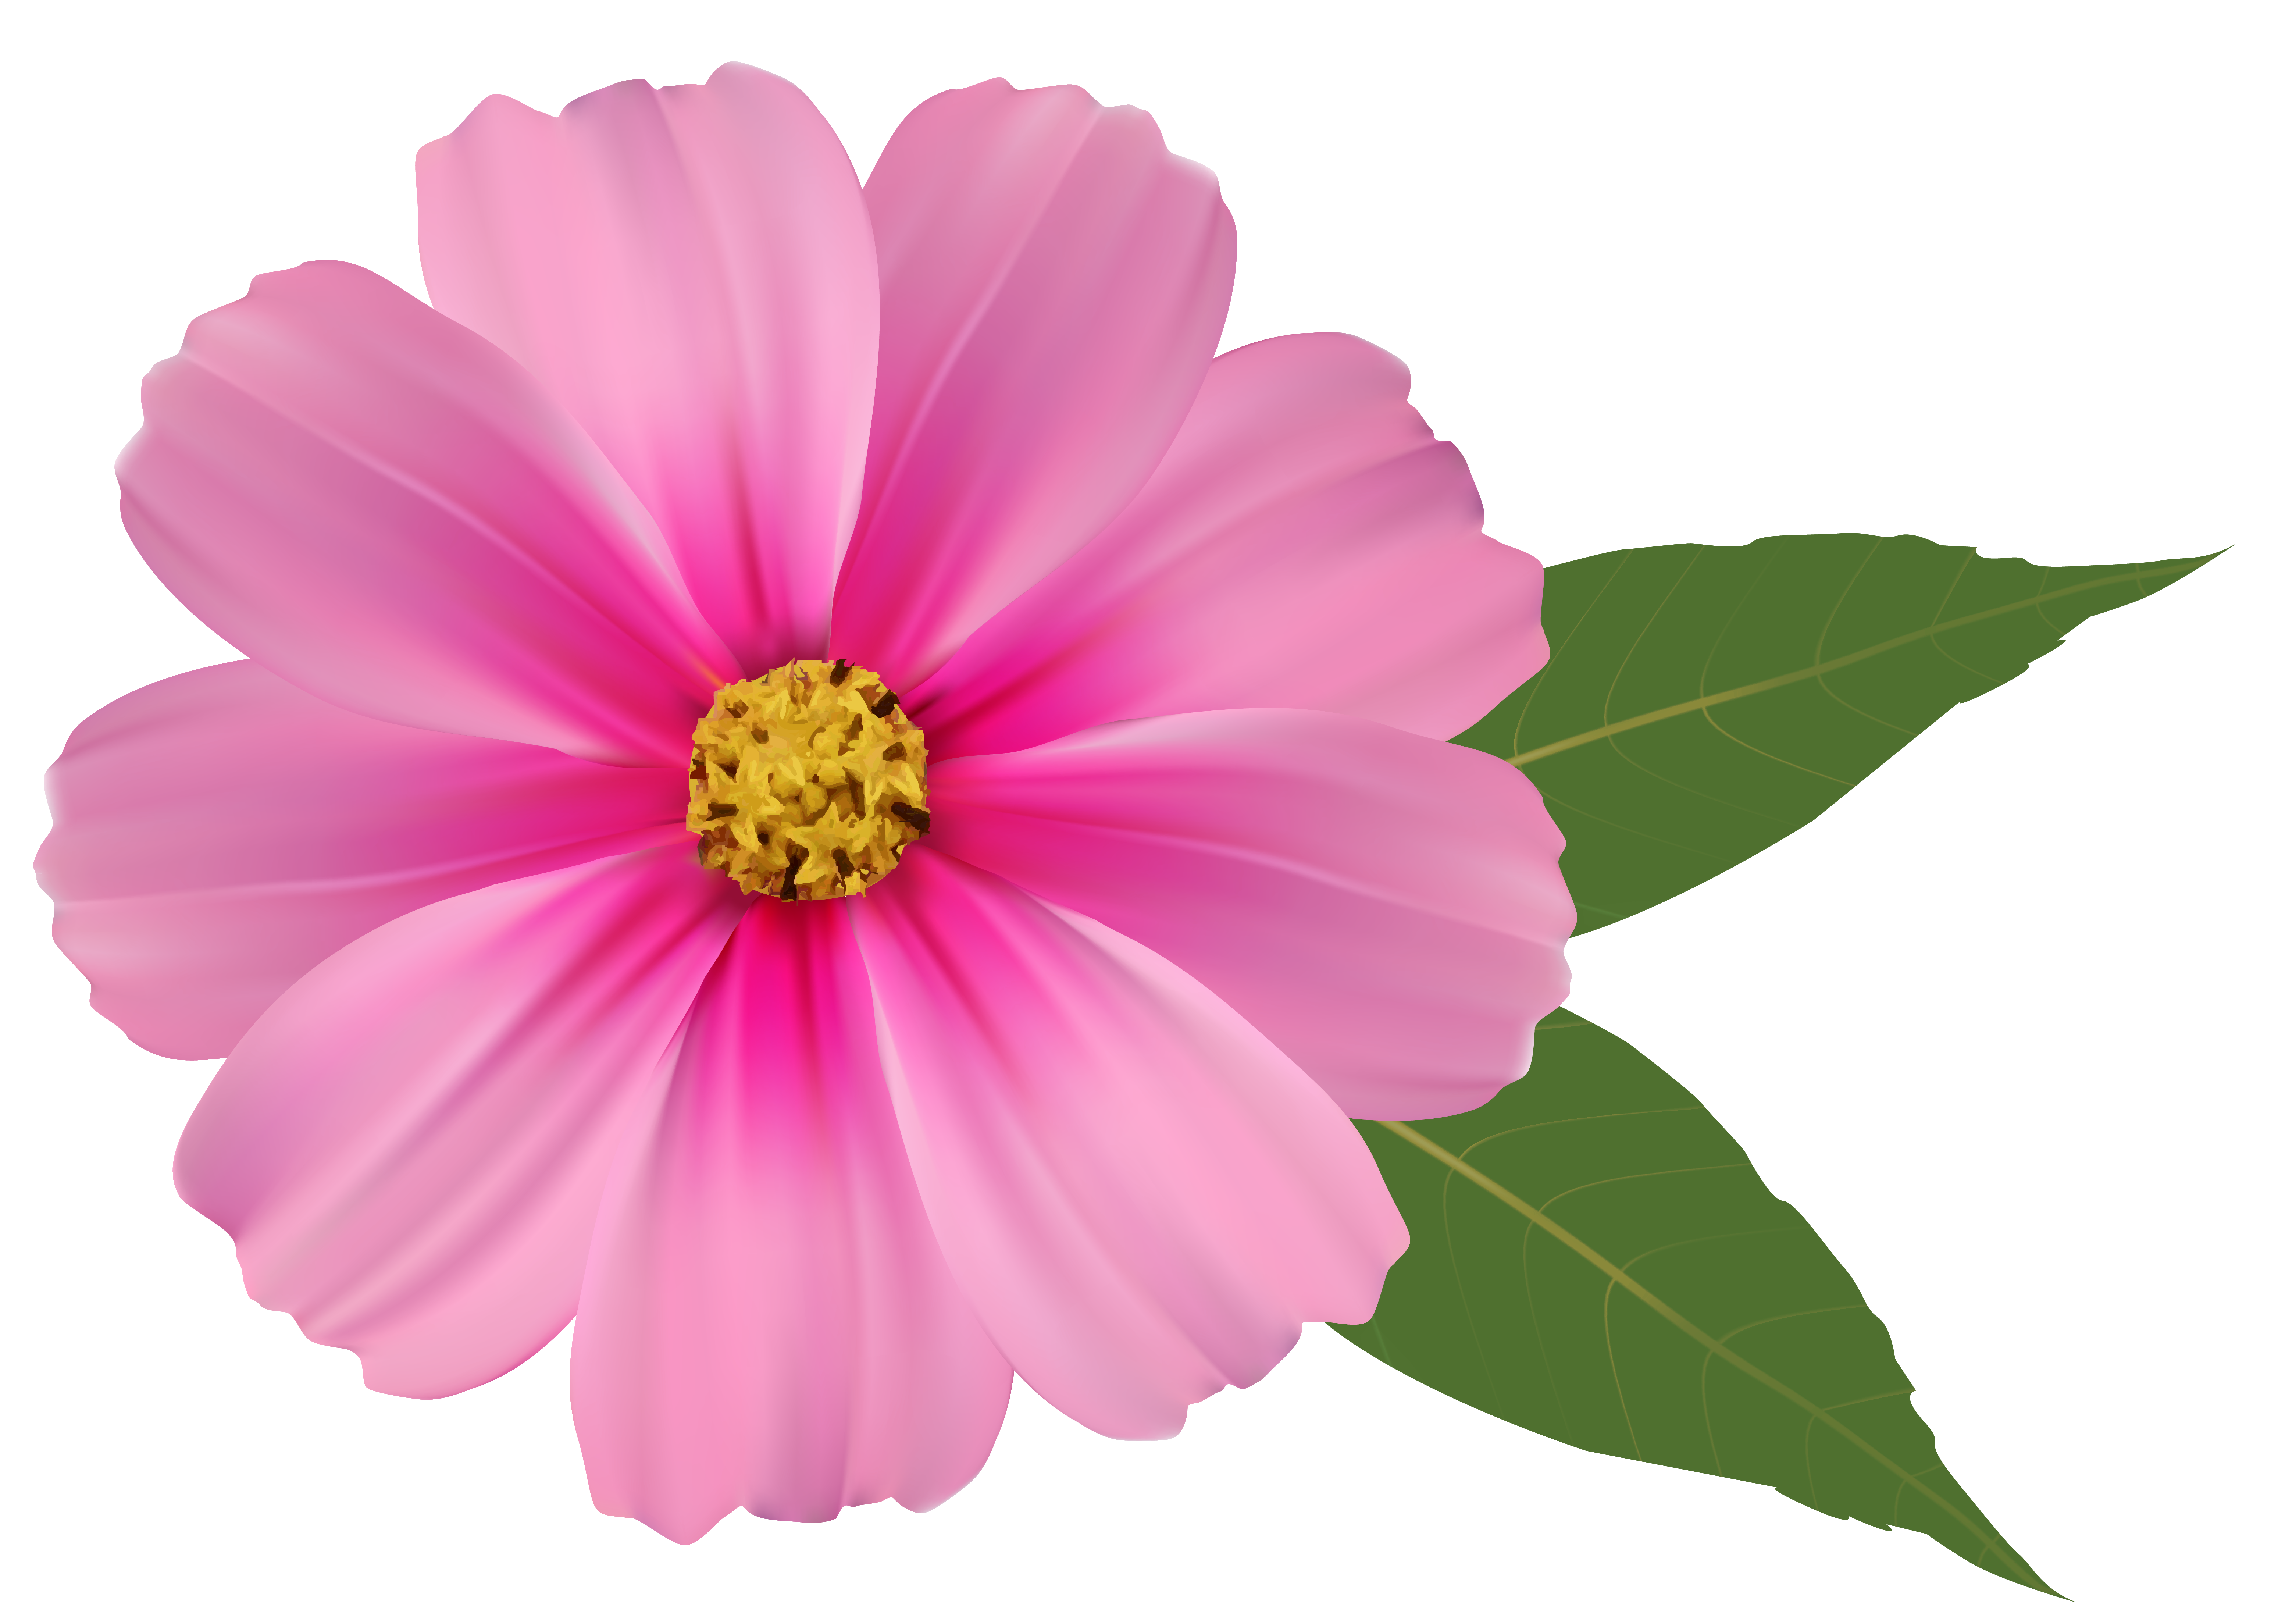 Image clipart gallery yopriceville. Pink flower png